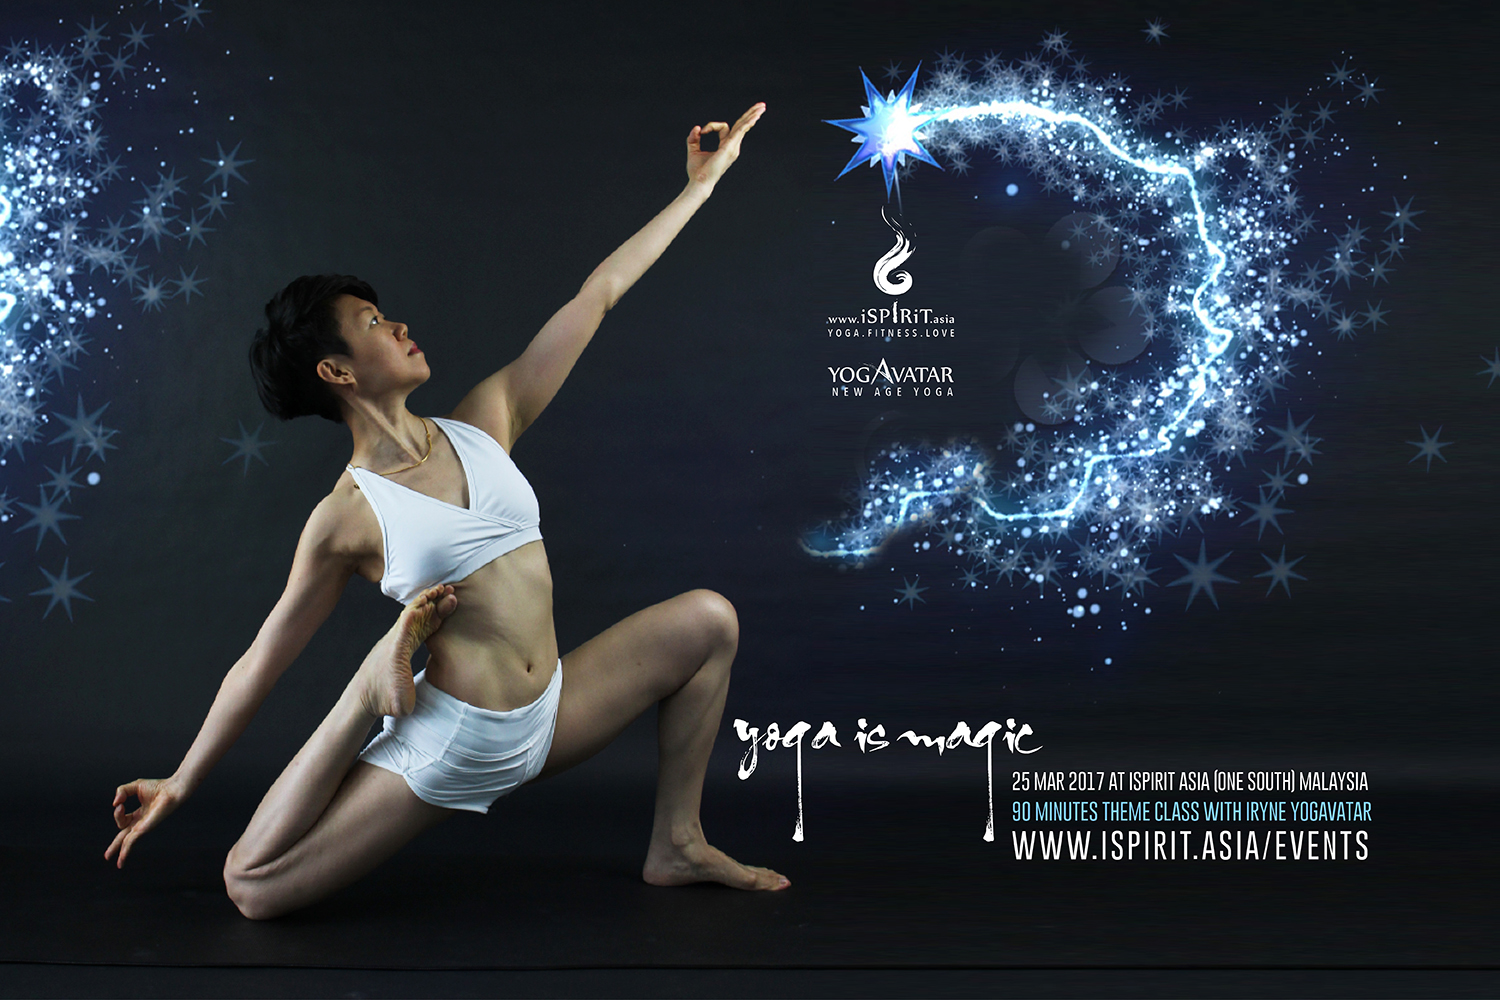 Yoga is Magic iRyne Yogavatar v2